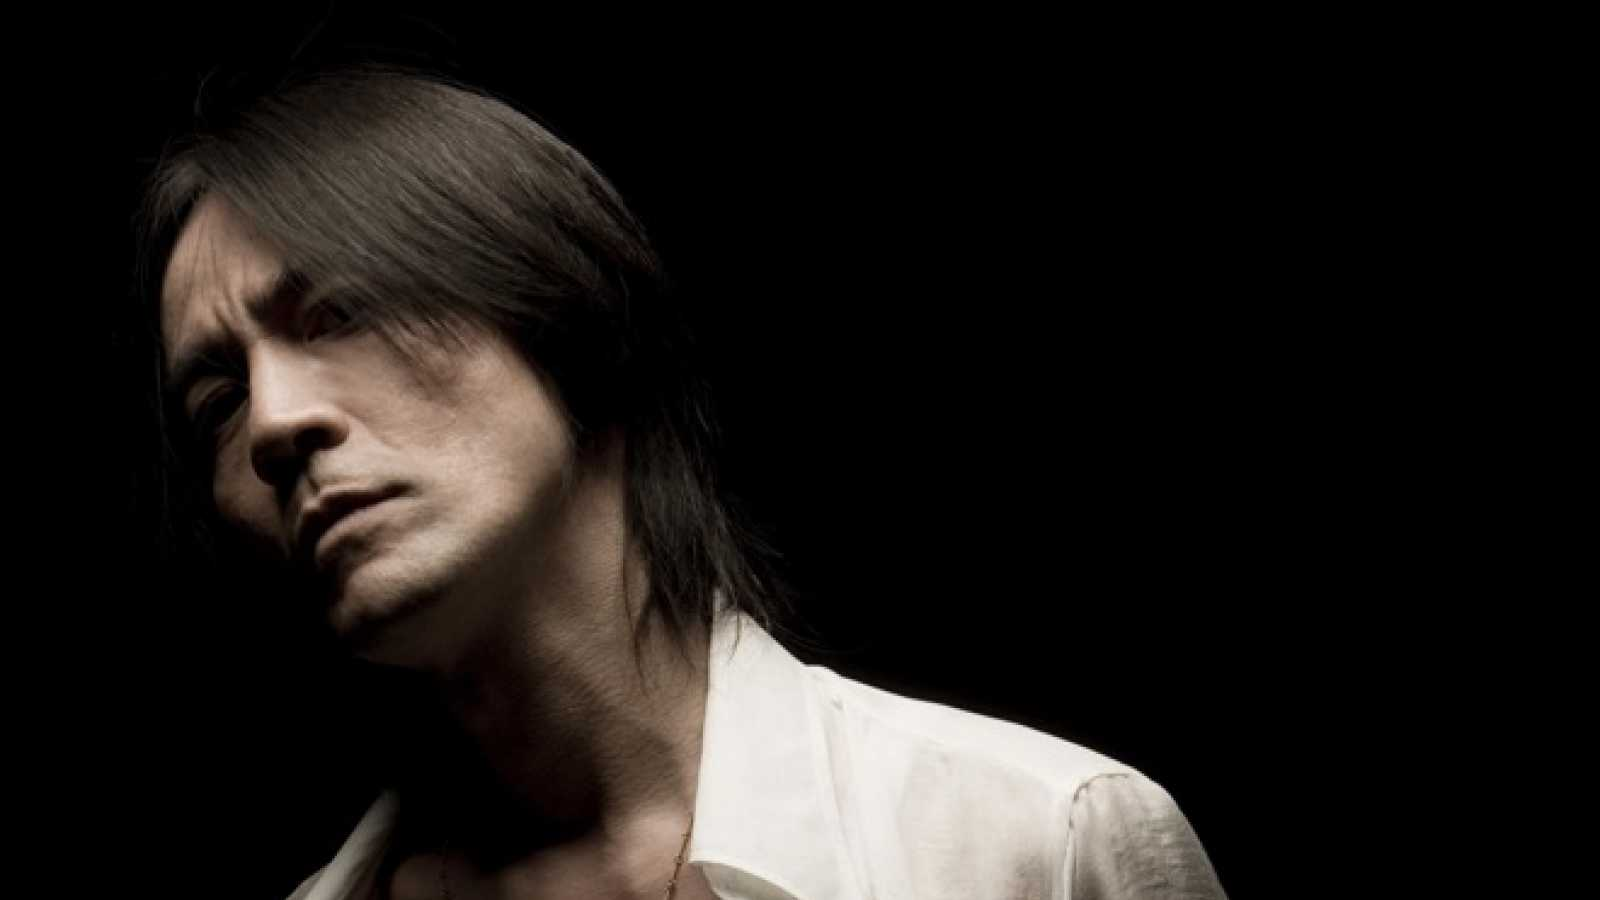 Kyosuke Himuro Adds Solo Discography to Streaming Services © Kyosuke Himuro. All rights reserved.